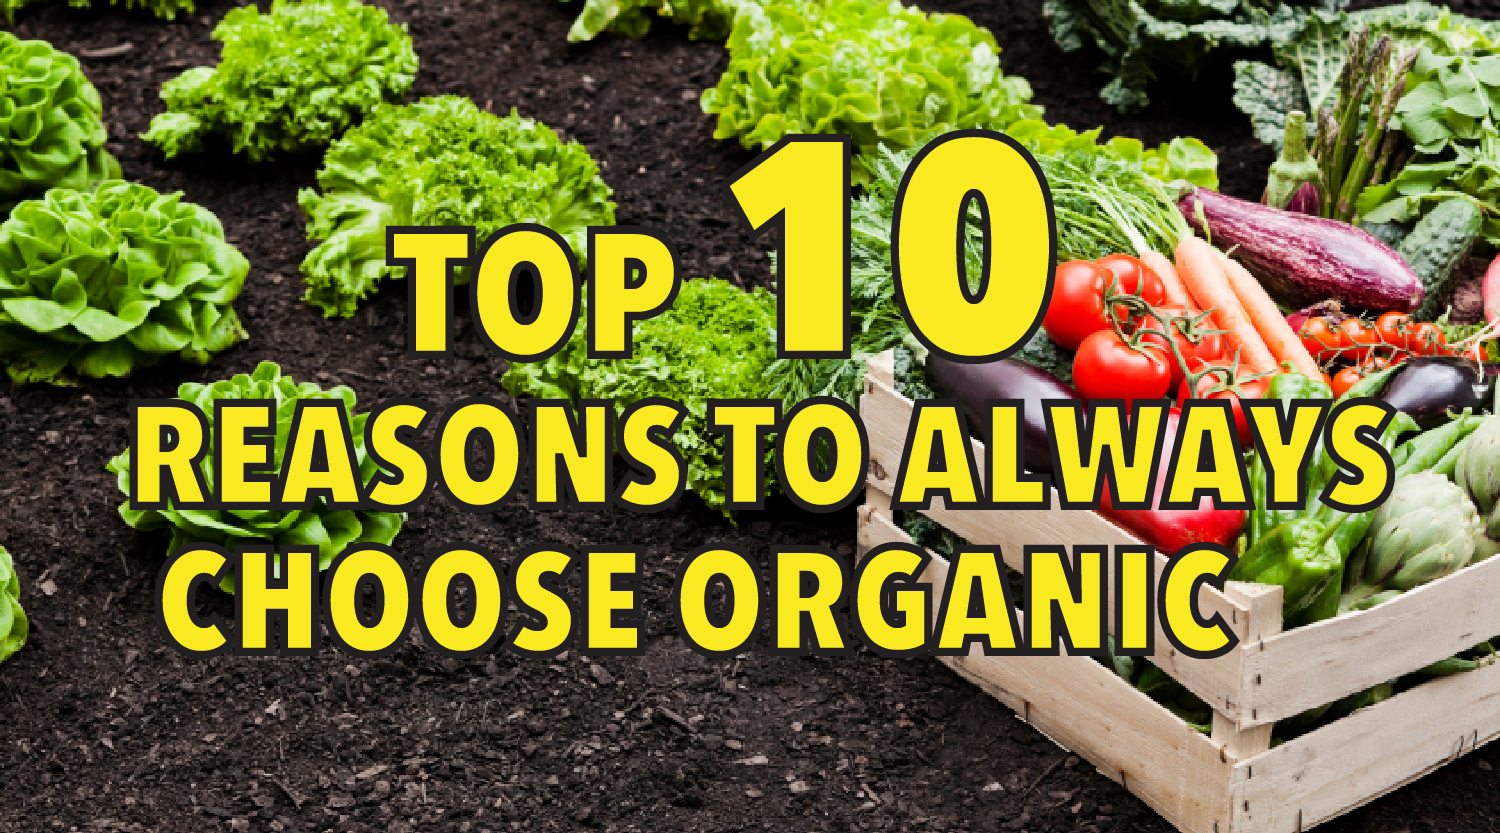 Top 10 reasons to always choose organic